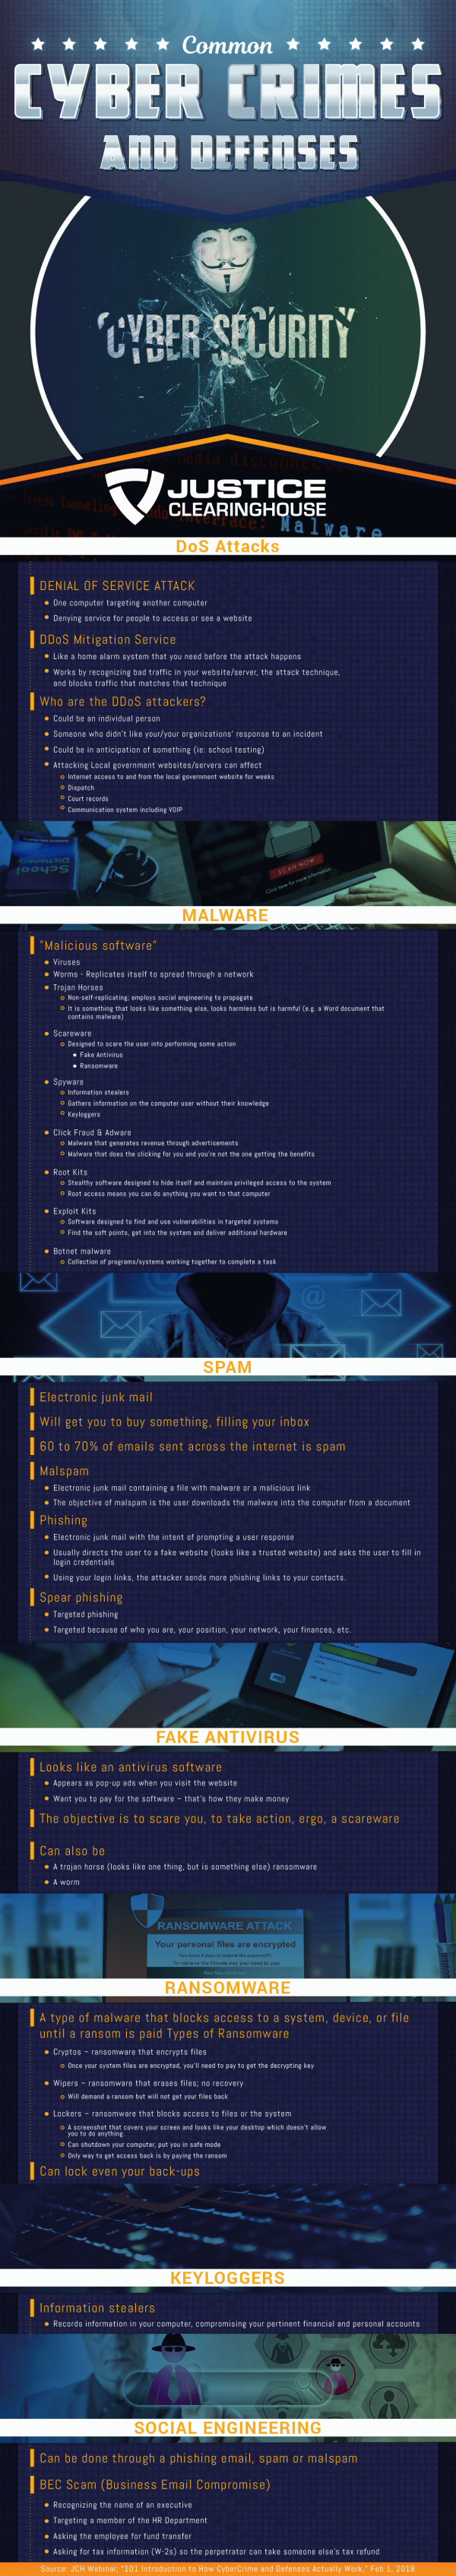 cyber security -Cybercrime and Cyber Defenses infographic